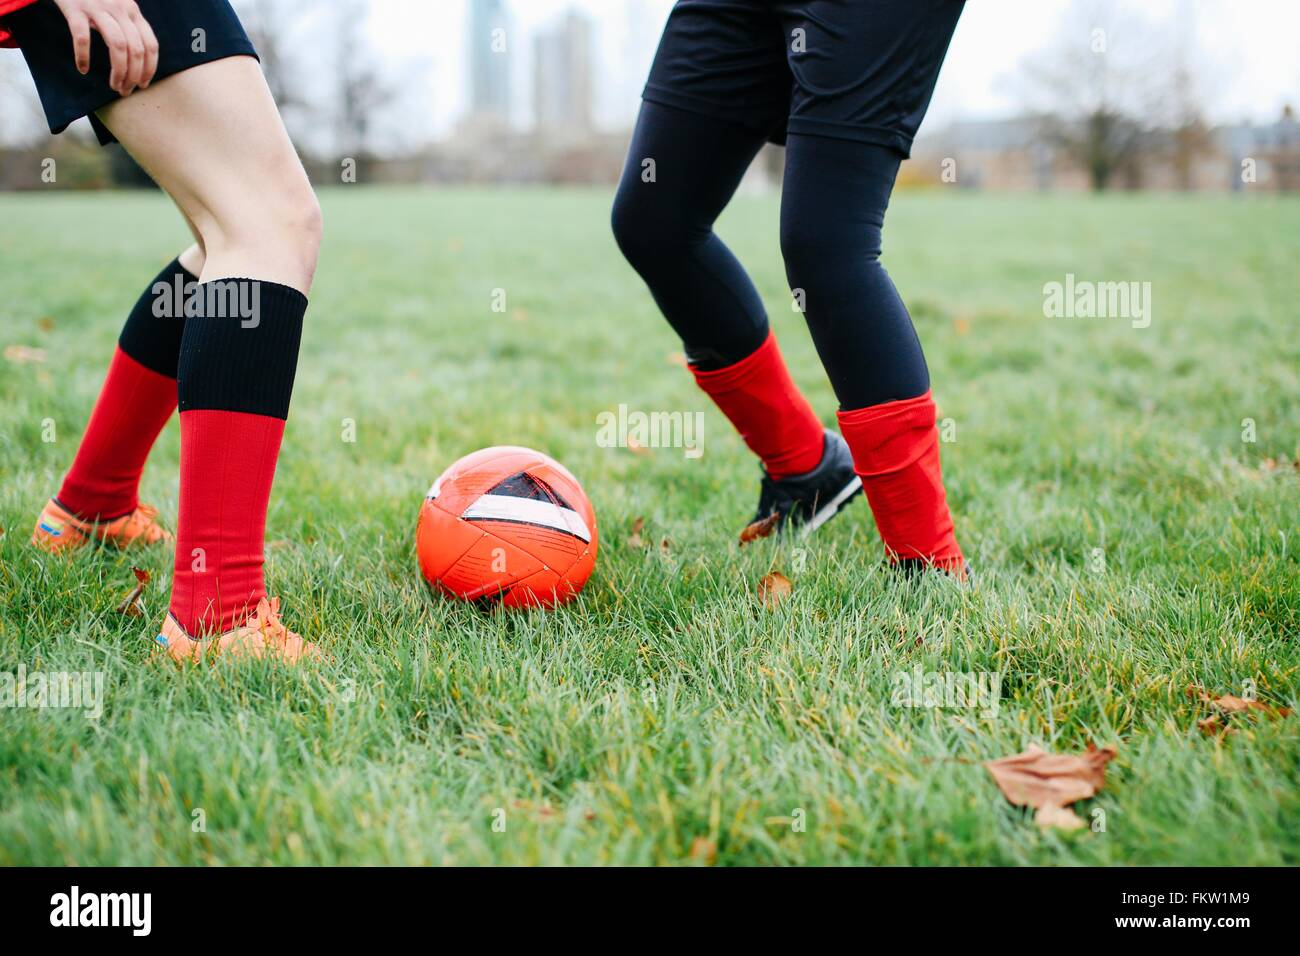 Legs of female soccer players practicing in park - Stock Image